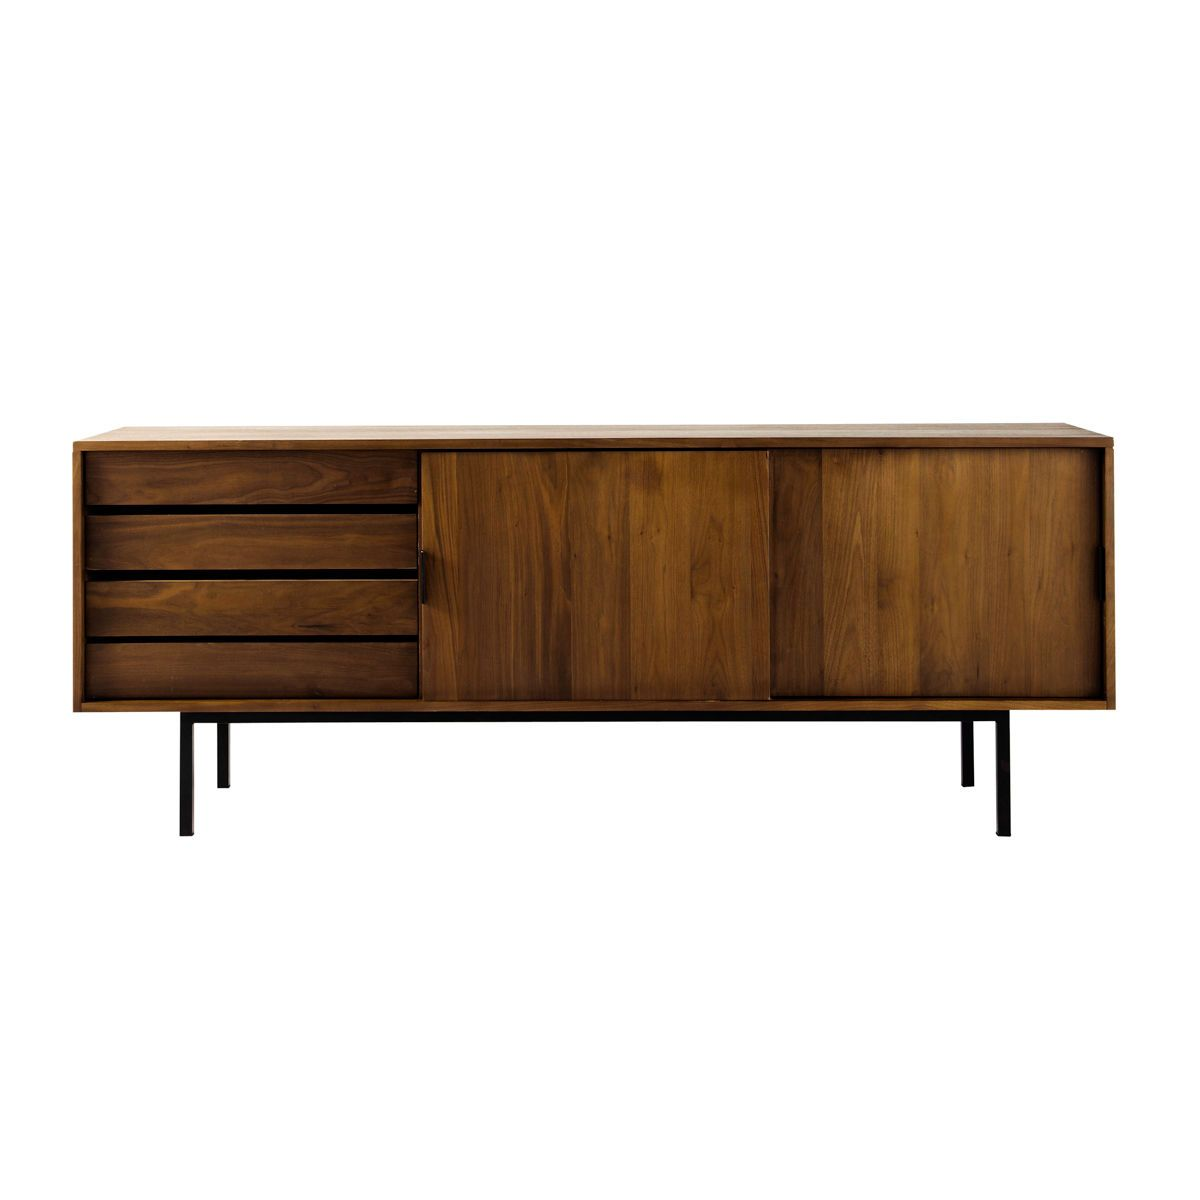 Retro Sideboard, Affordable